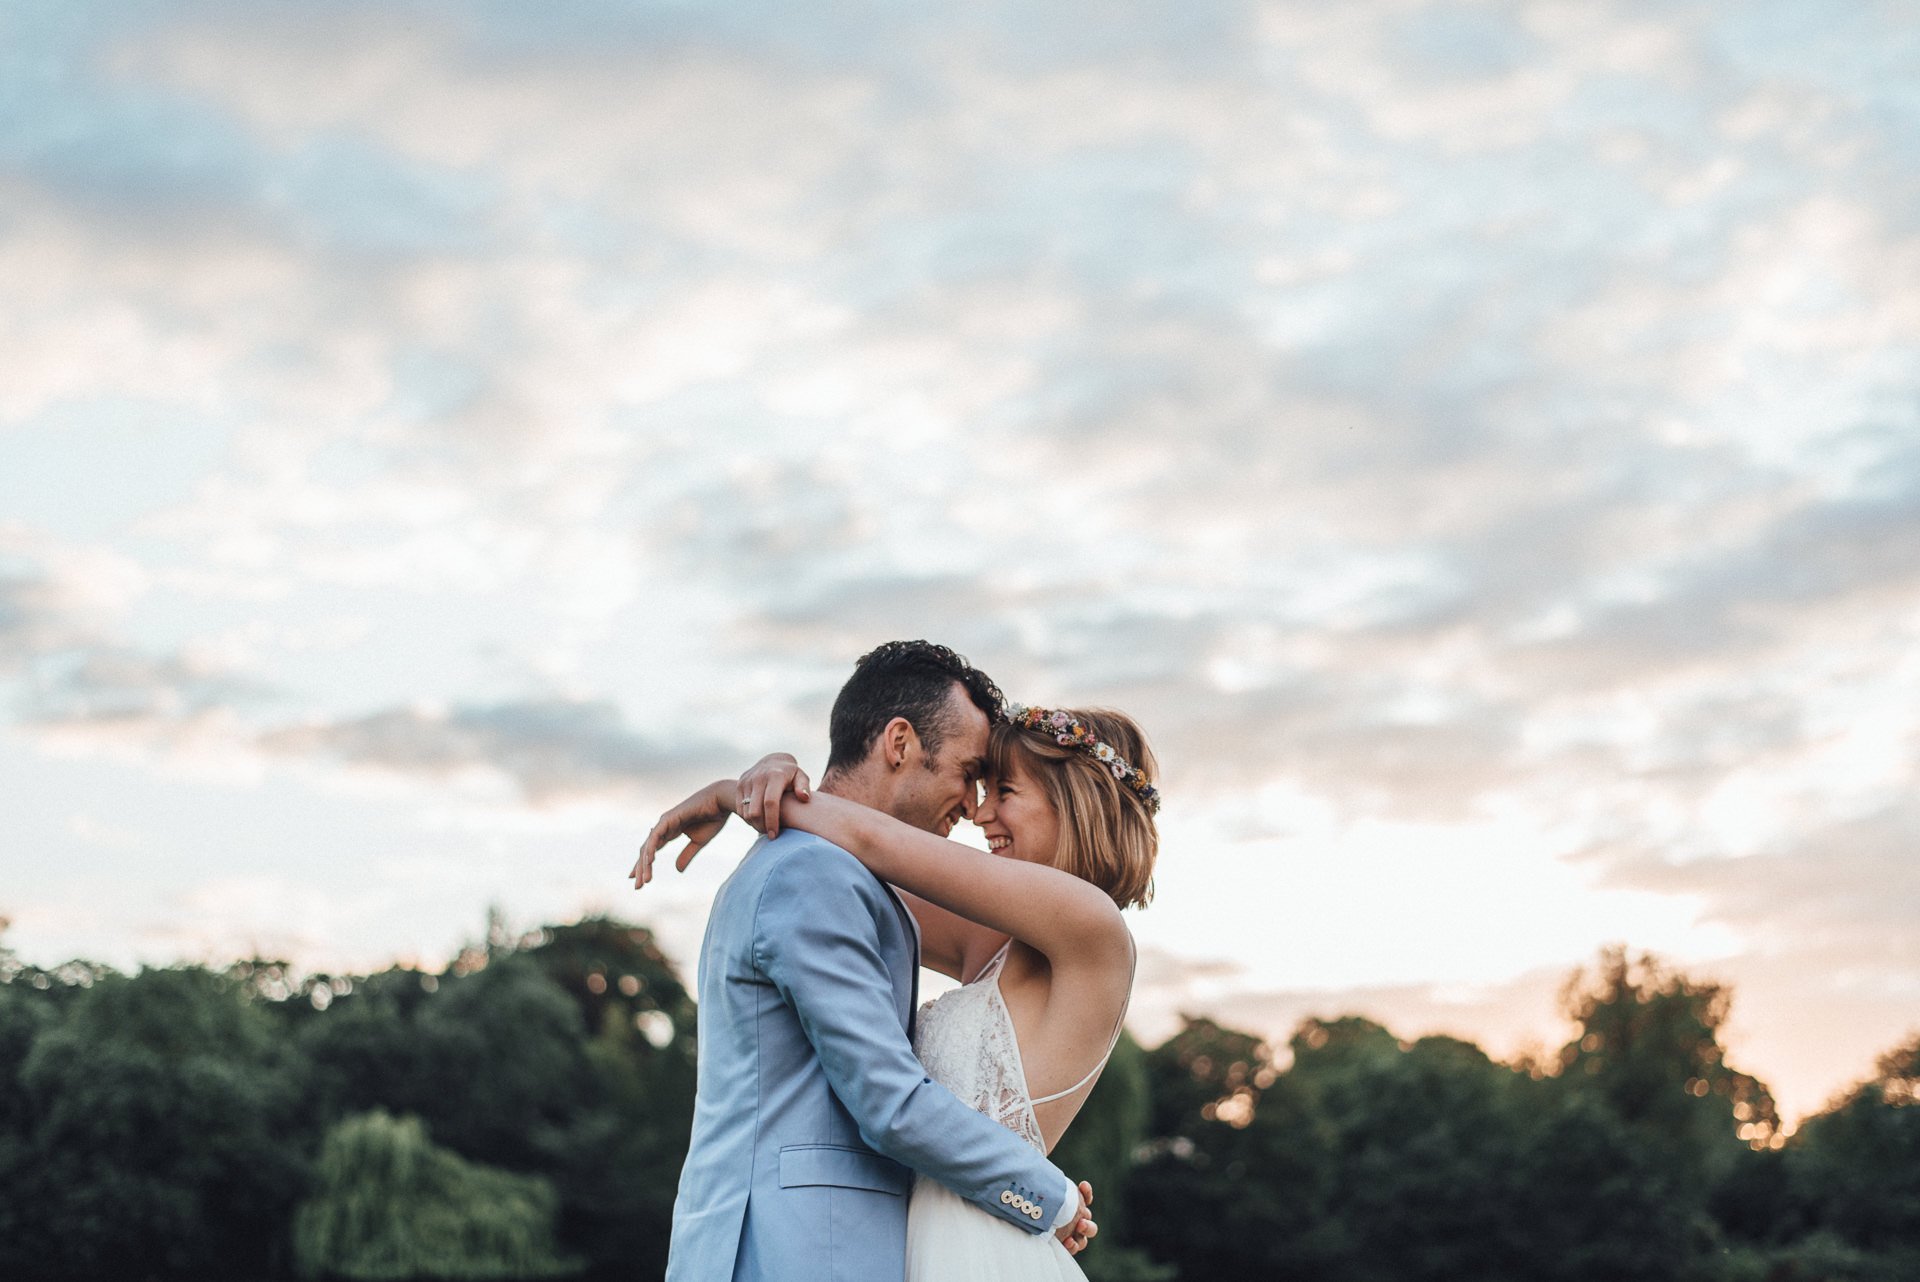 Couple embrace under a dramatic sky. Romantic Cambridge wedding photography